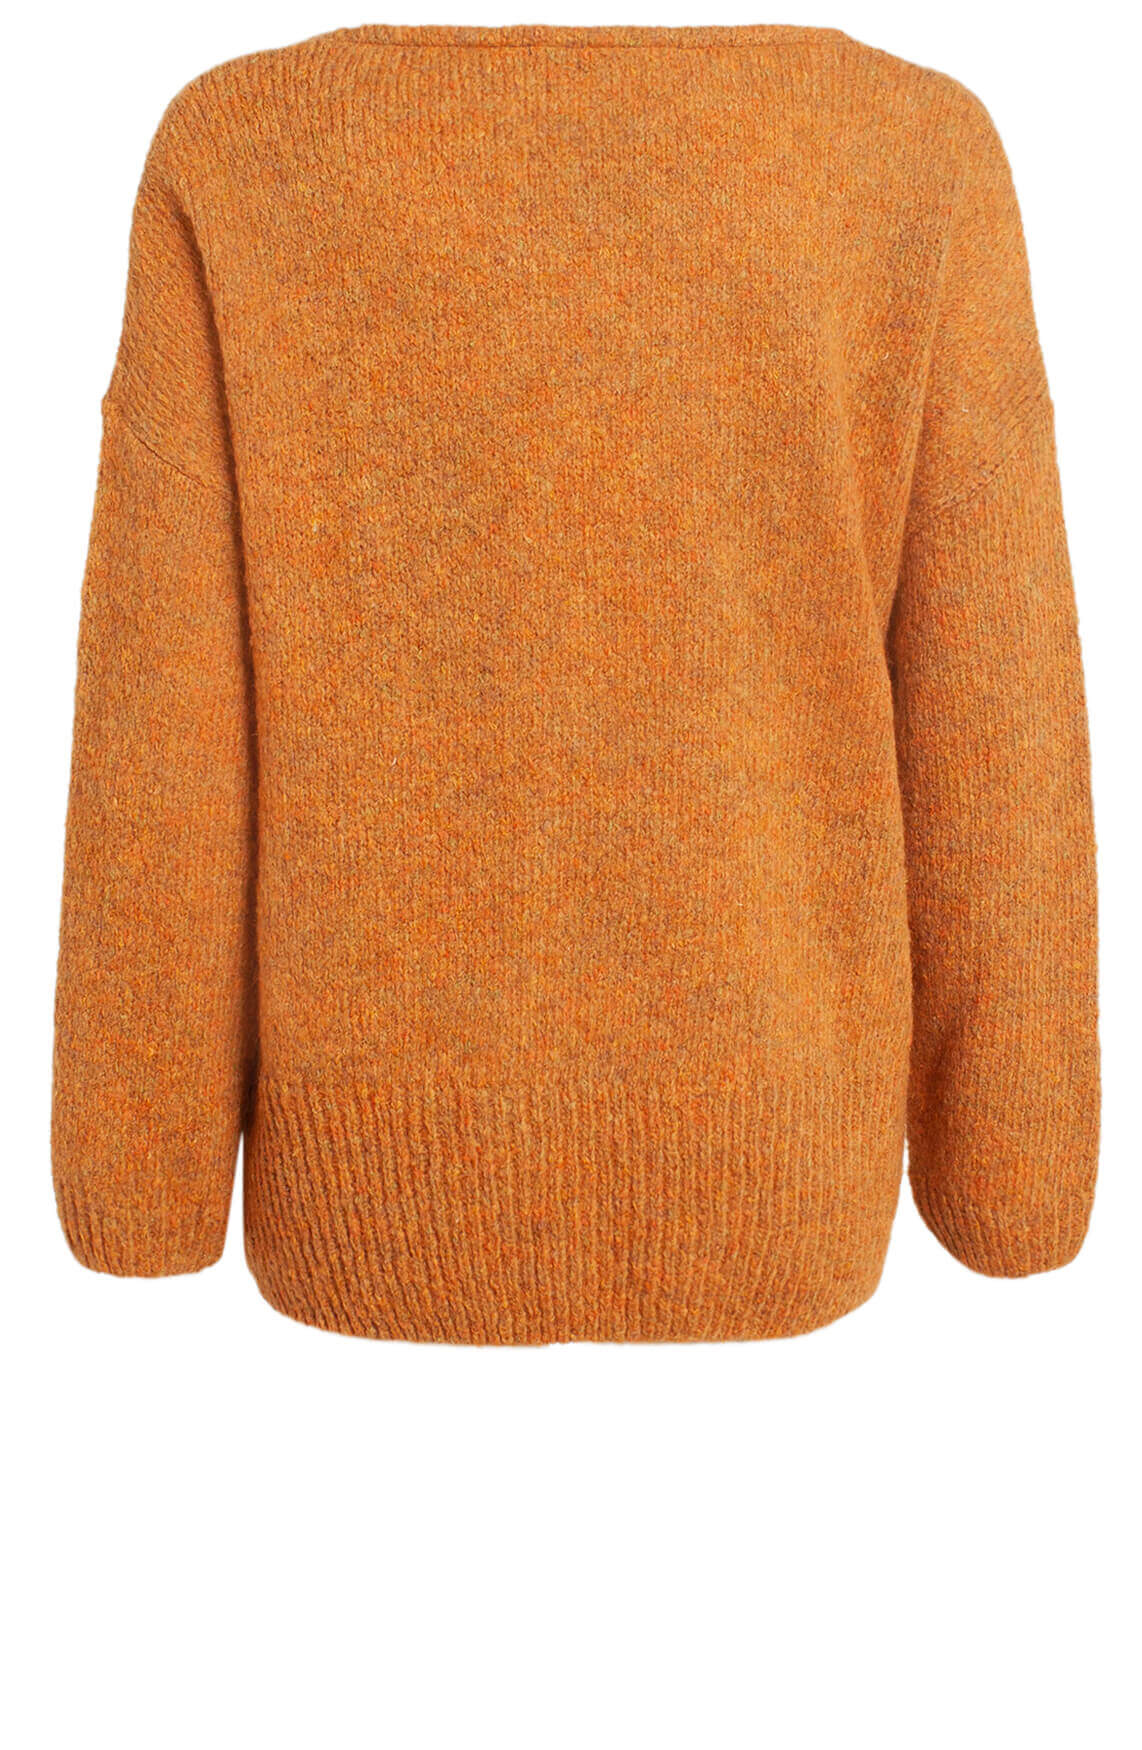 Moscow Dames Iva pullover Ecru